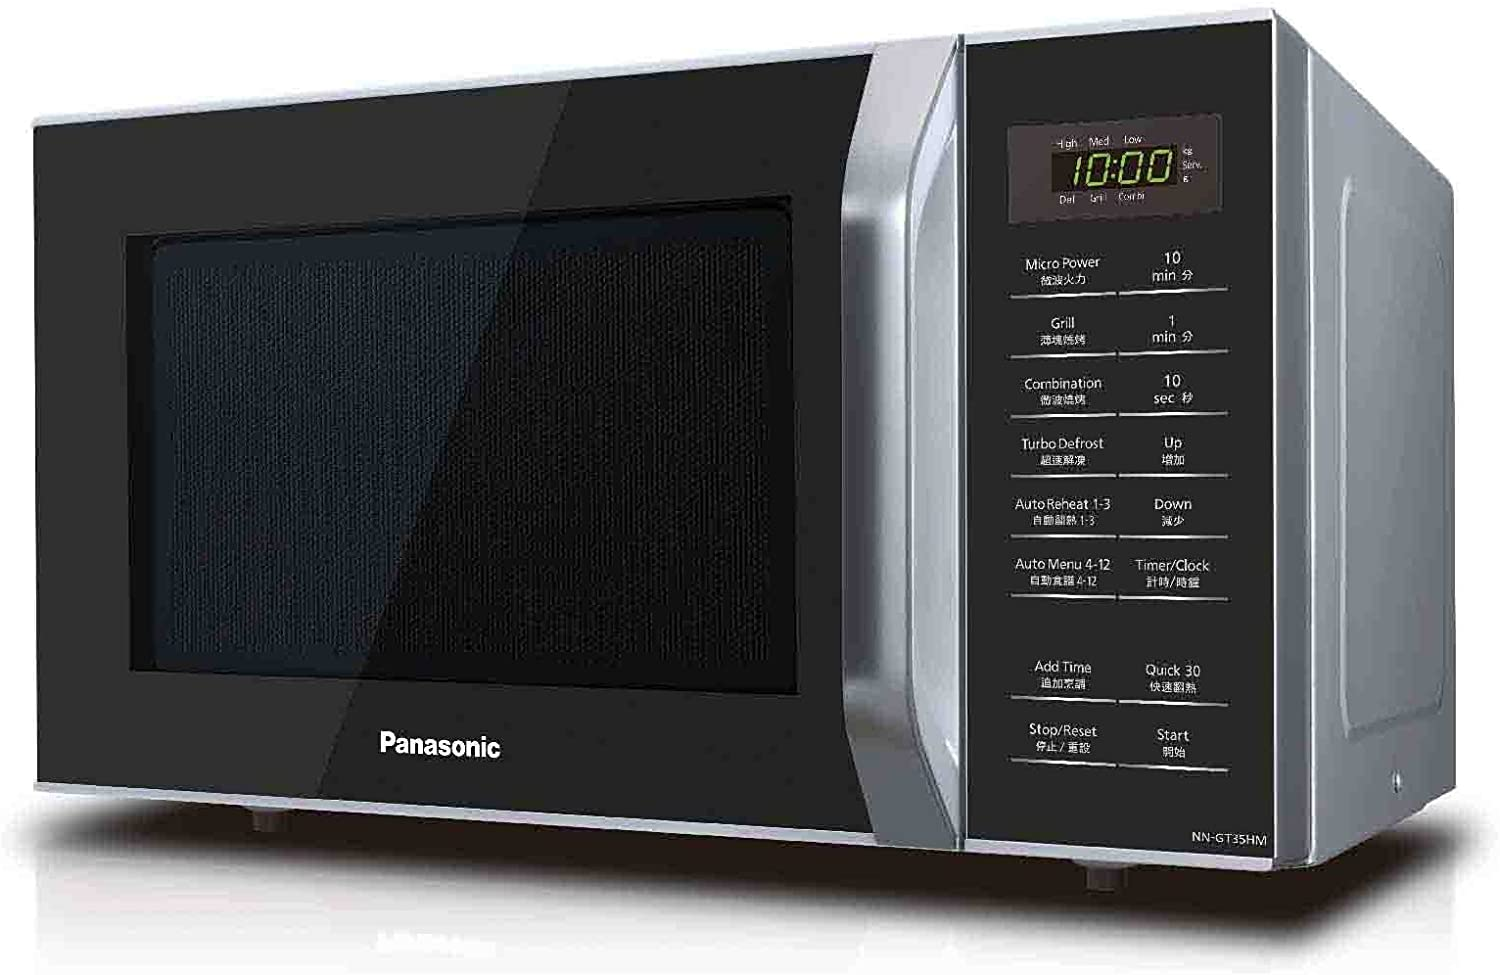 Panasonic NN-GT35HMYTE 23-Liter Microwave Oven with Grill, 220 Volts (Not for USA - European Cord)